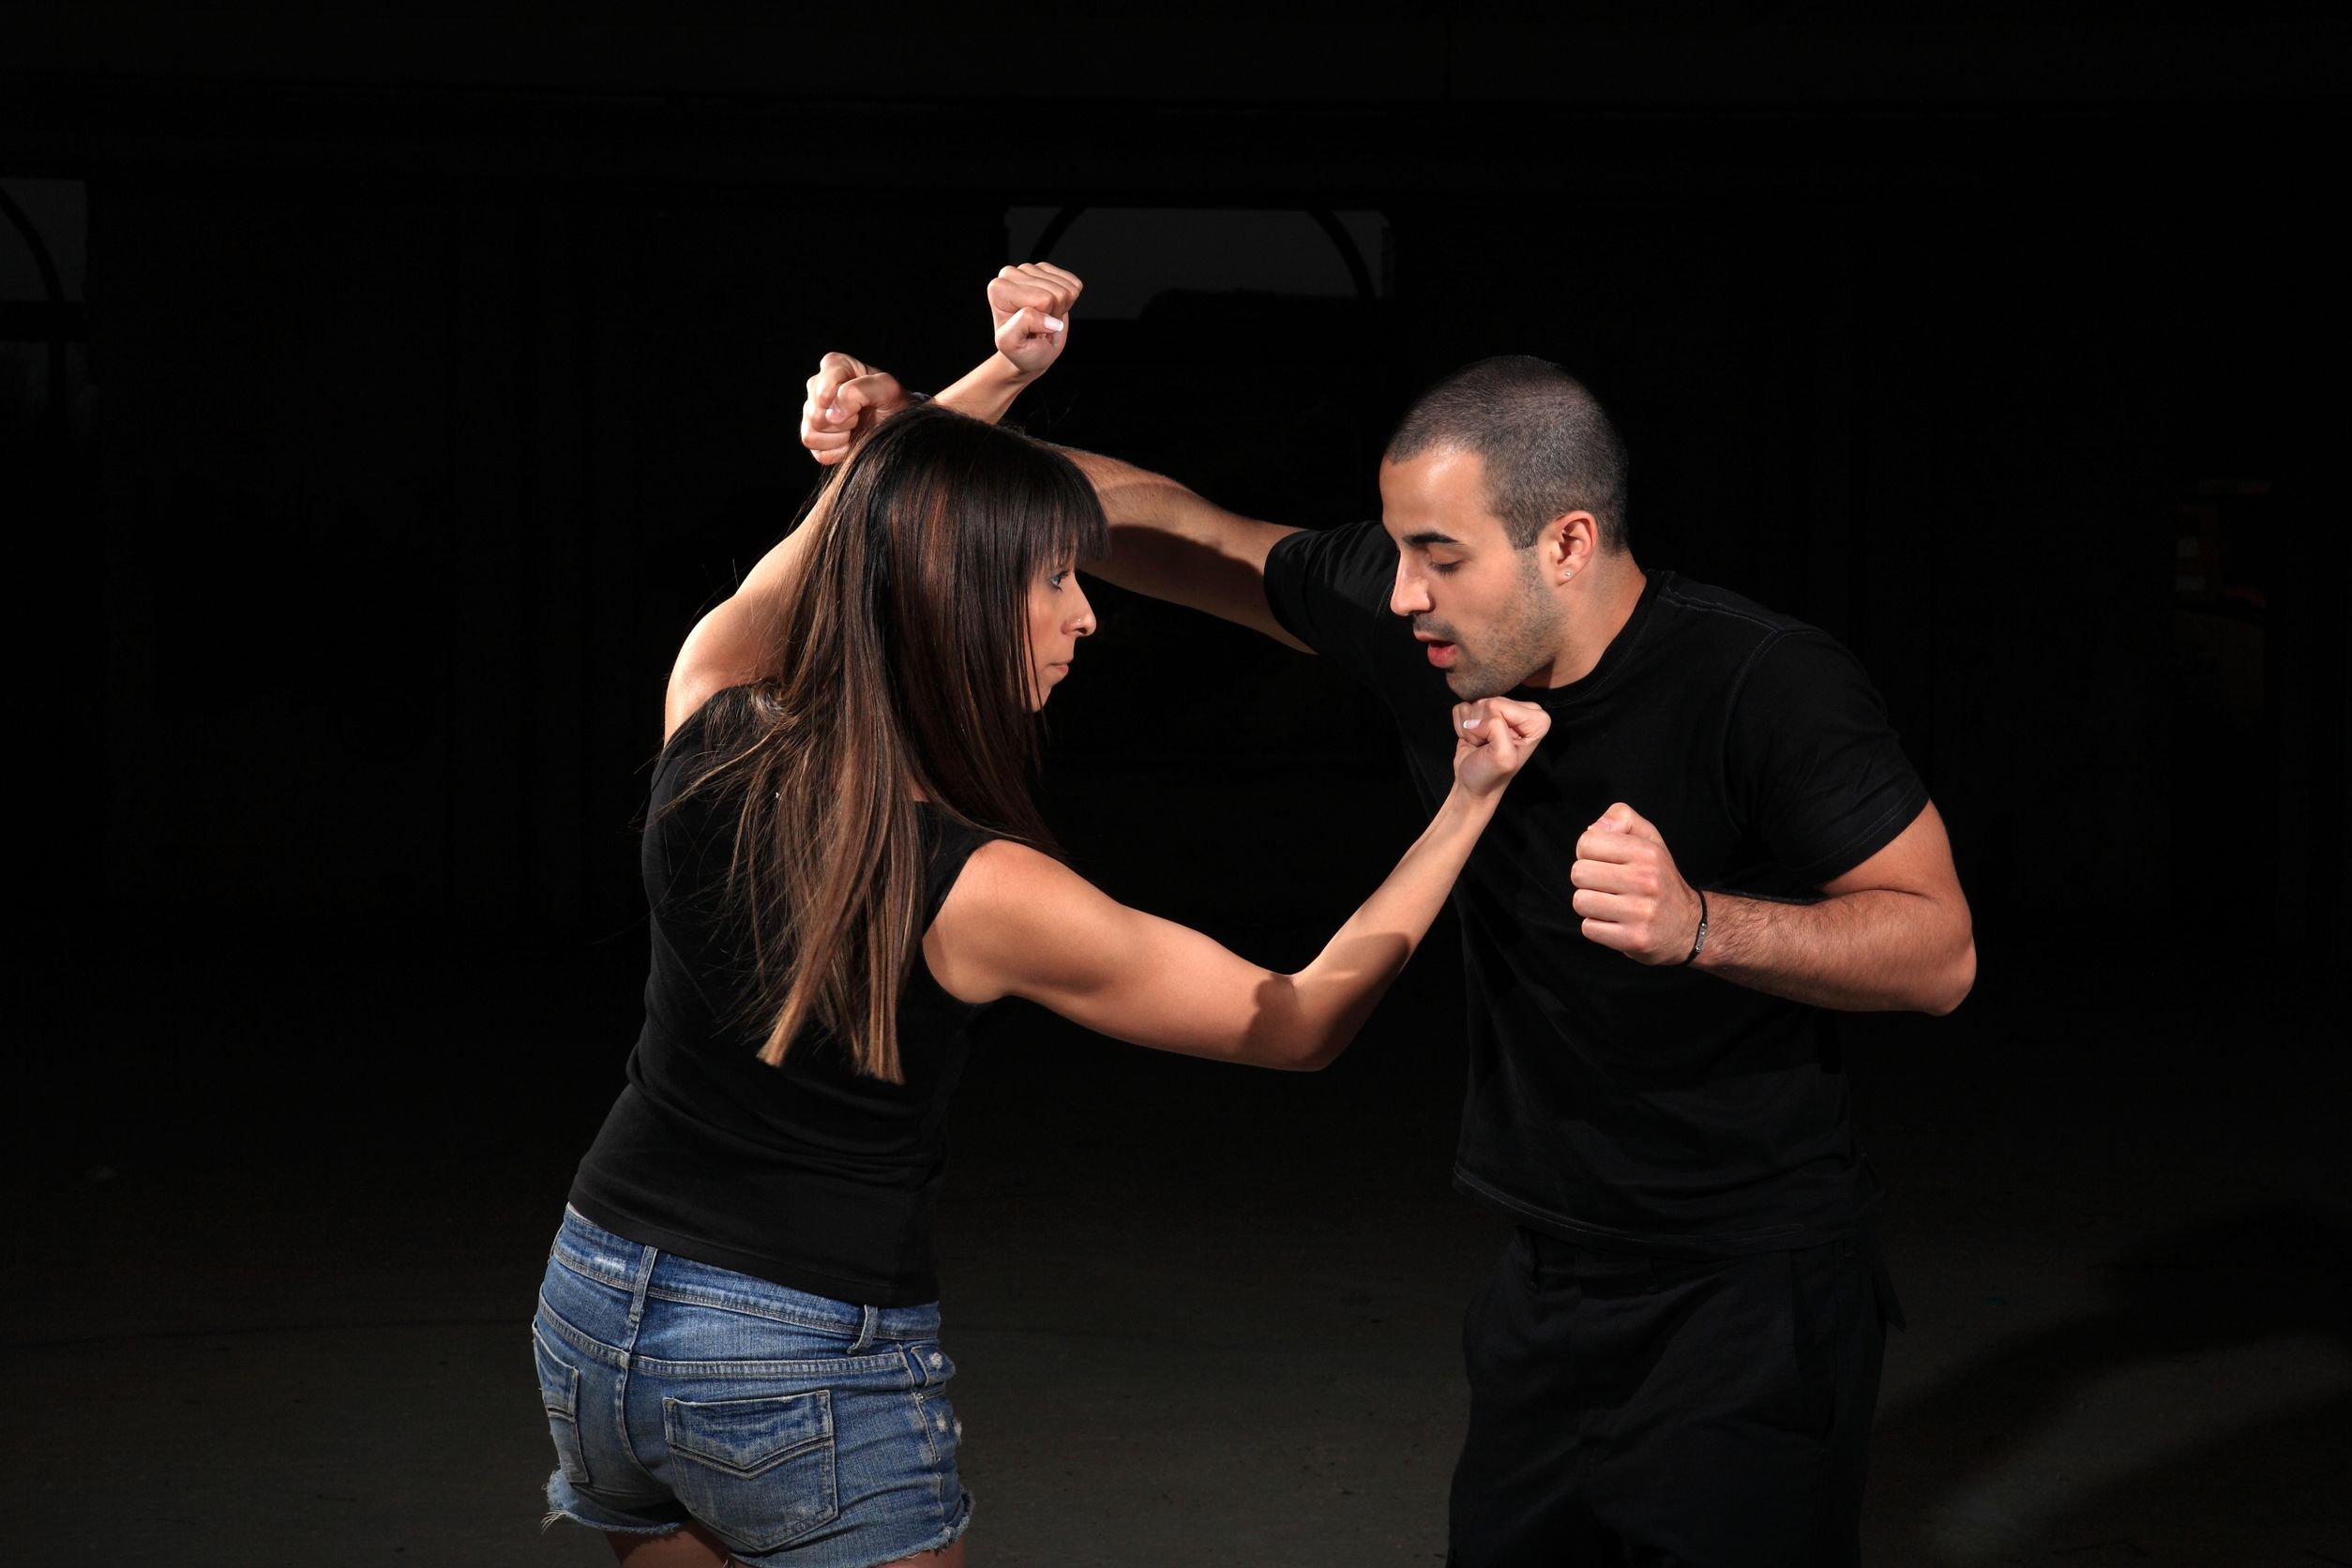 Introducing Basic Self-Defense Course for WOMEN at JKA Bahrain